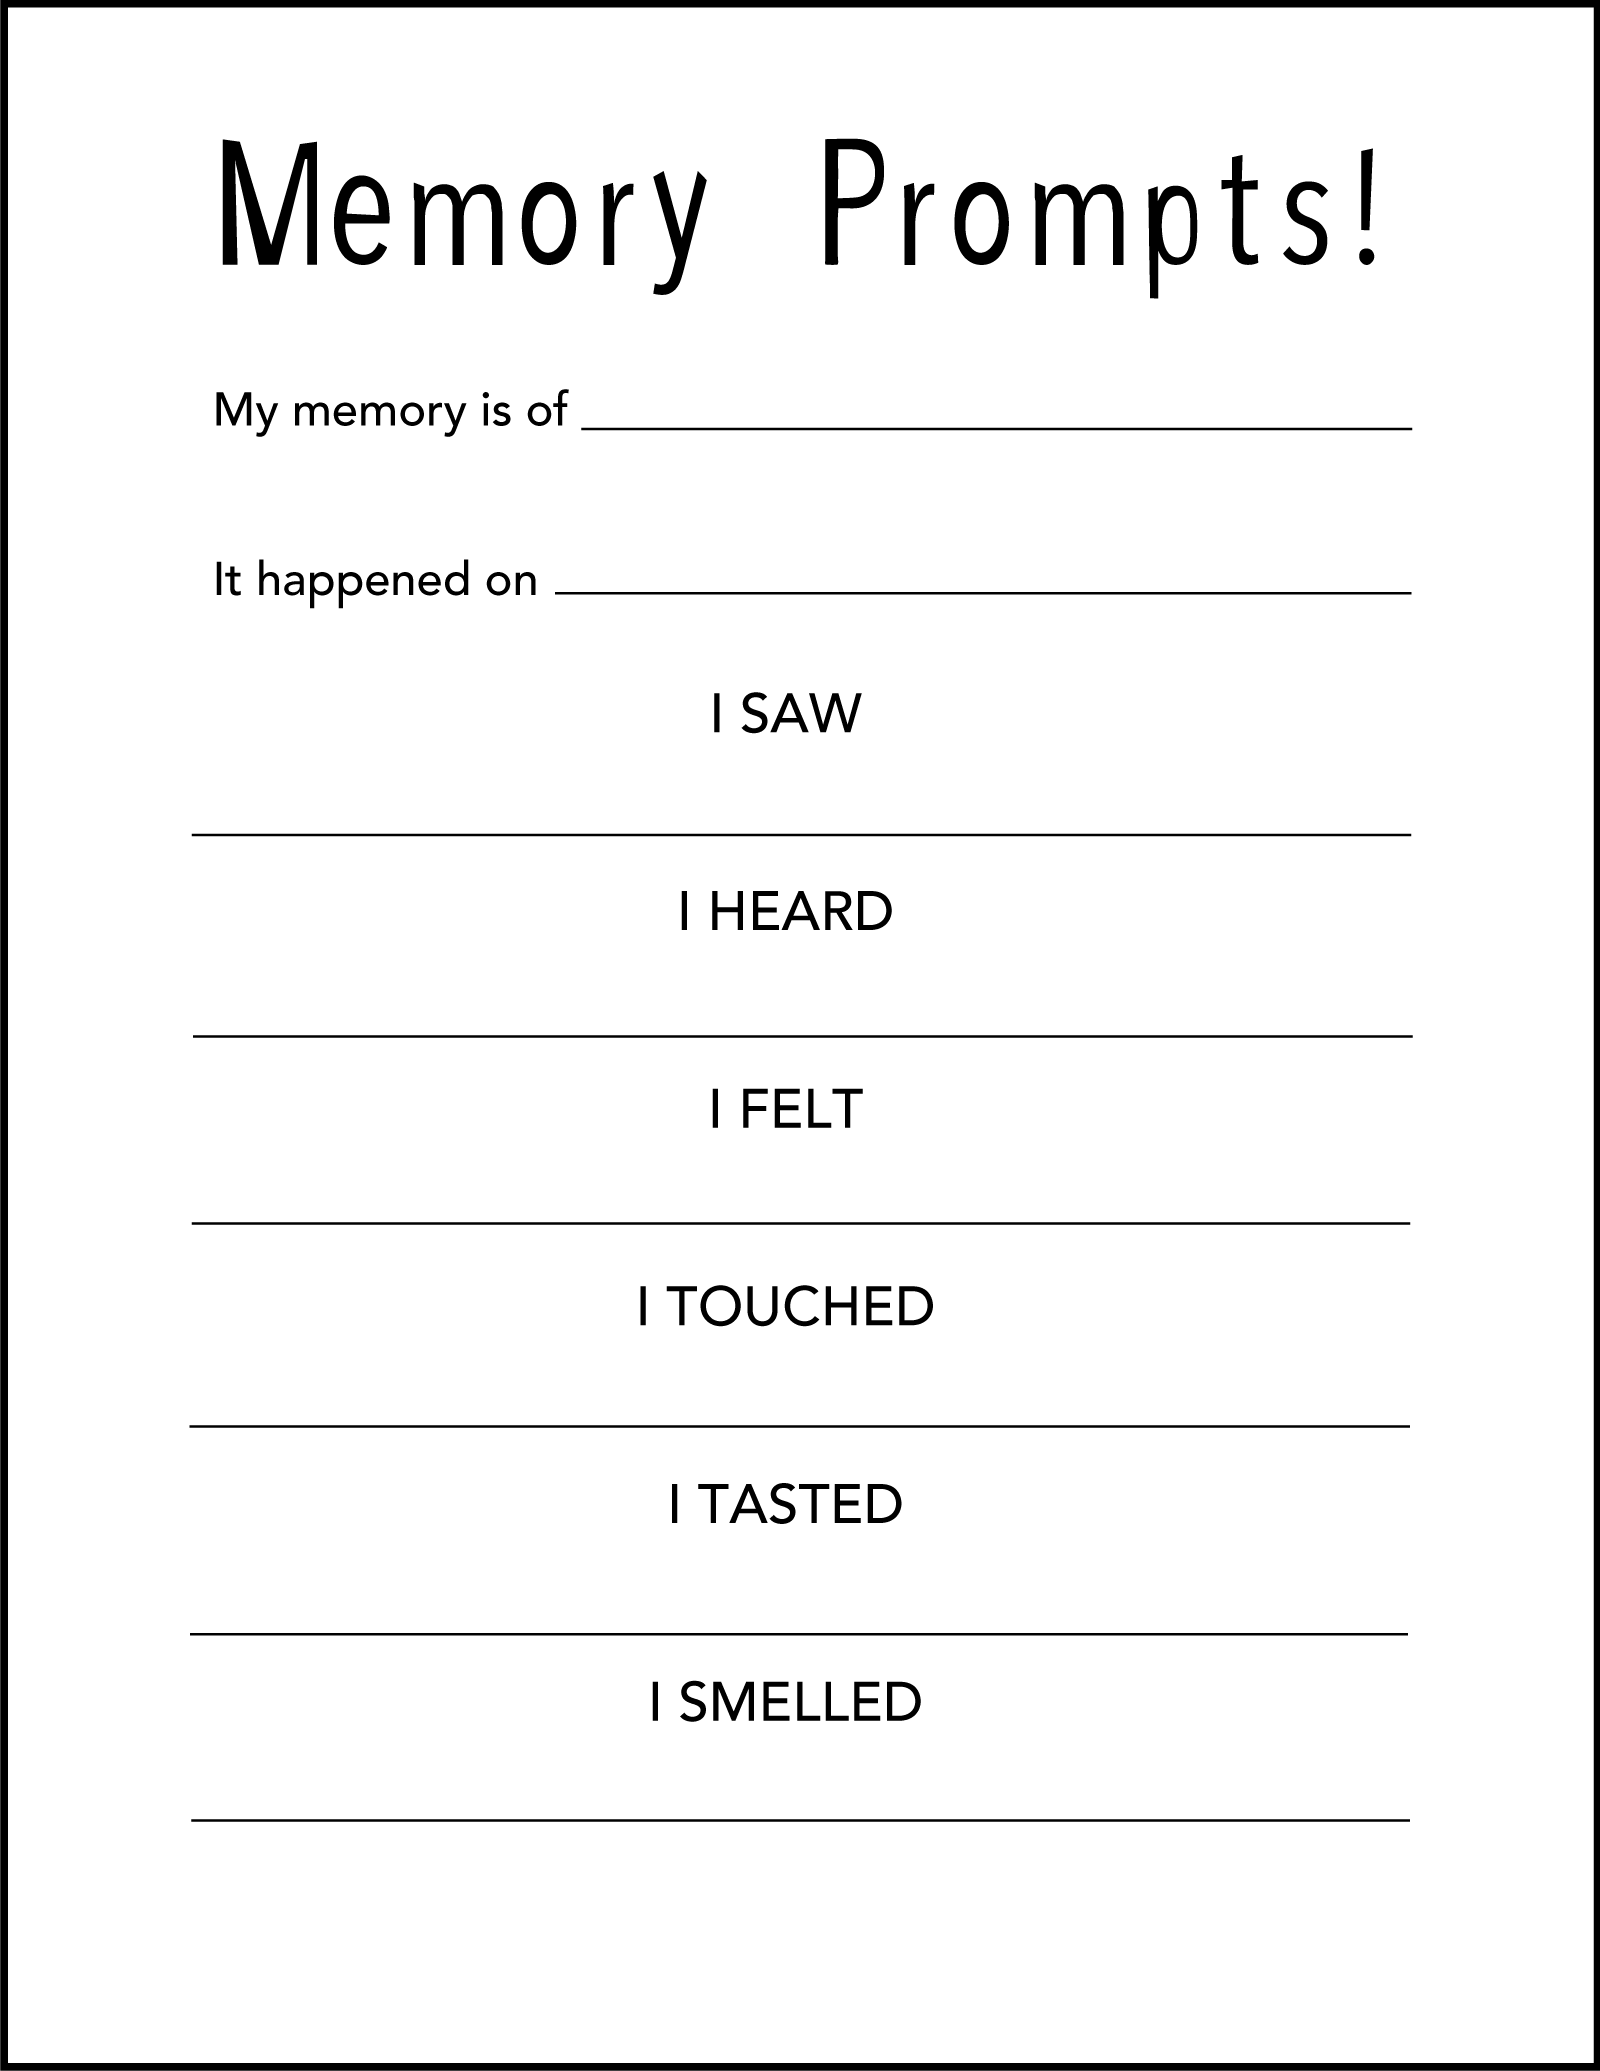 Memory Prompt Template